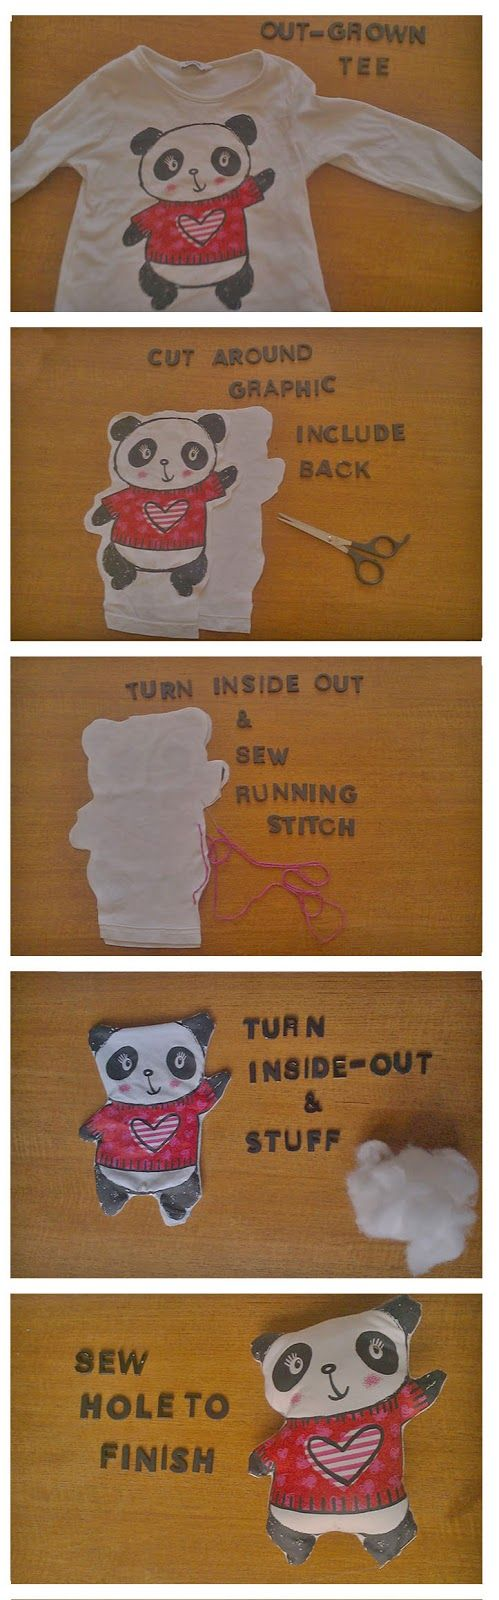 Upcycle T-shirt stuffed animal. For an out-grown shirt or one with stains.